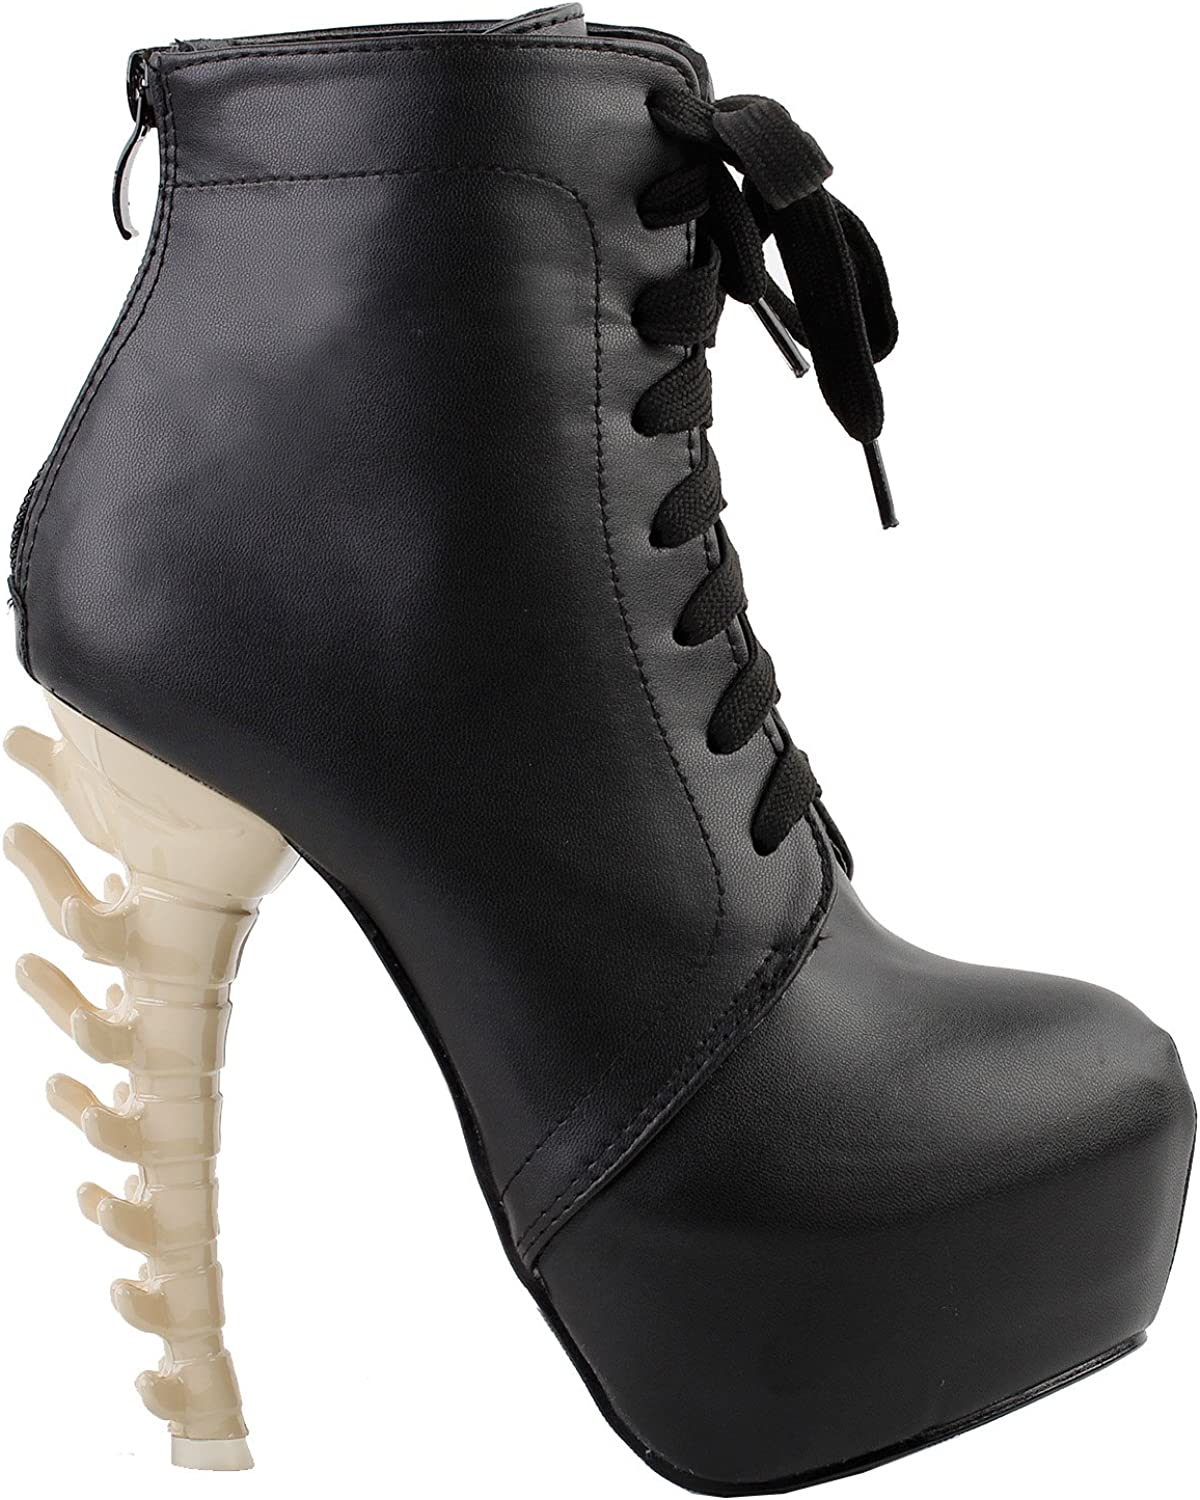 Show Story Punk Strappy Lace Up Buckle High-top Bone Platform Ankle Boots,LF80647